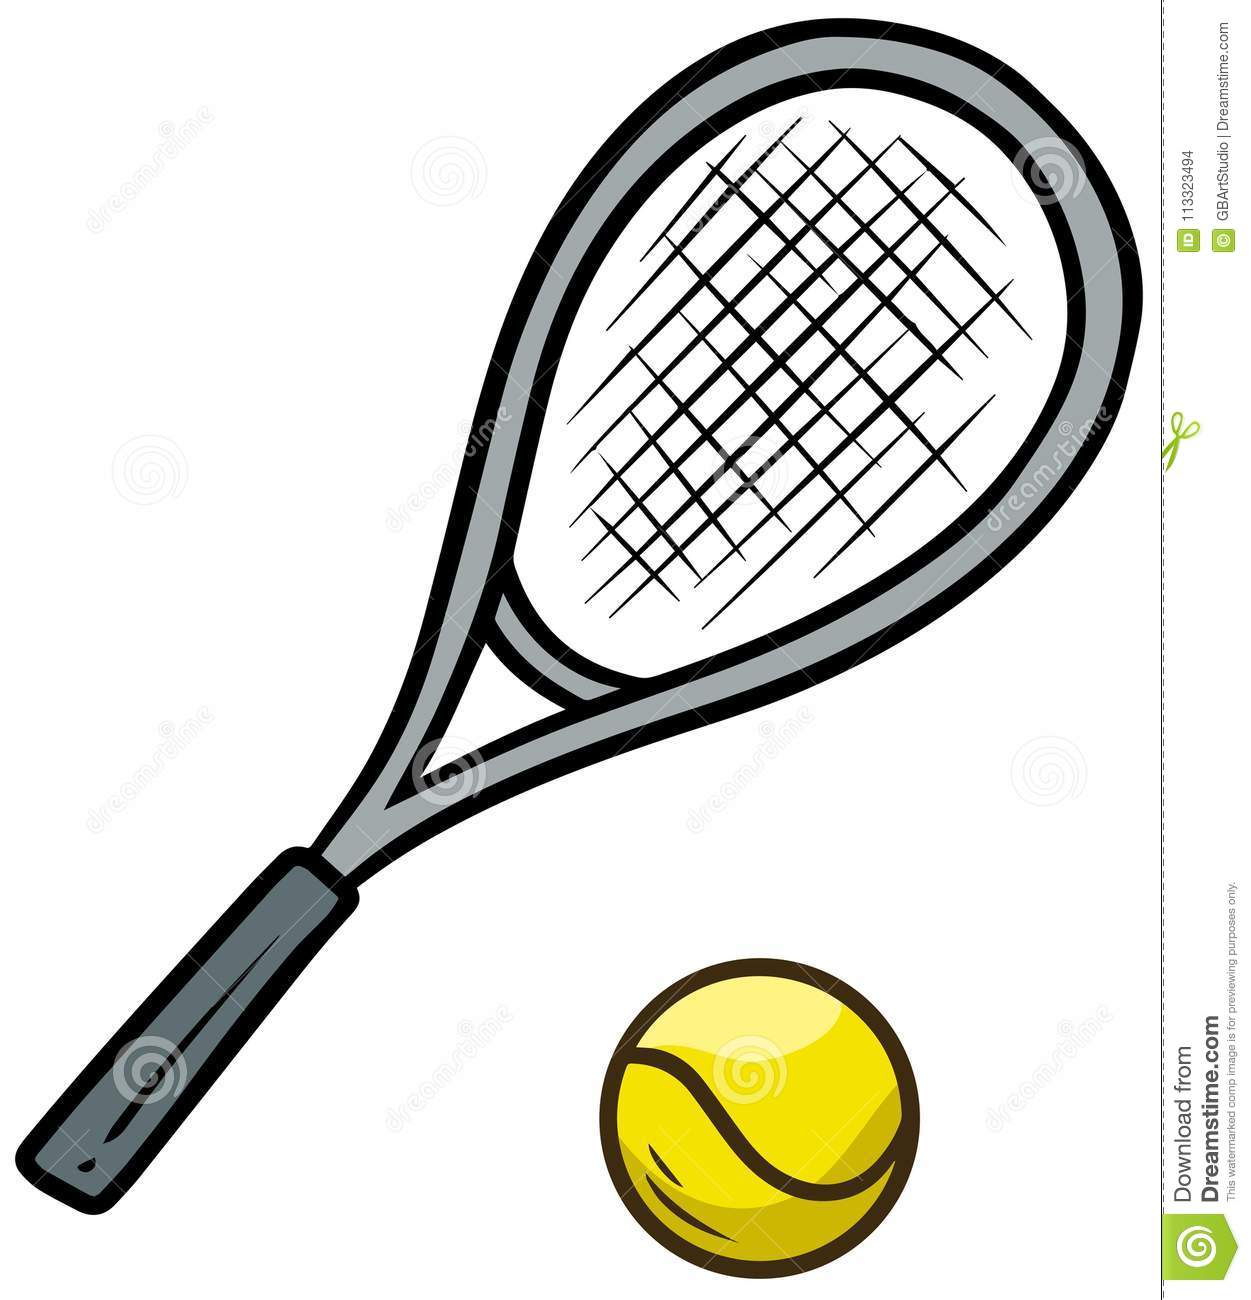 d850f263c Cartoon tennis racket and yellow ball isolated on white background. Vector  icon. More similar stock illustrations